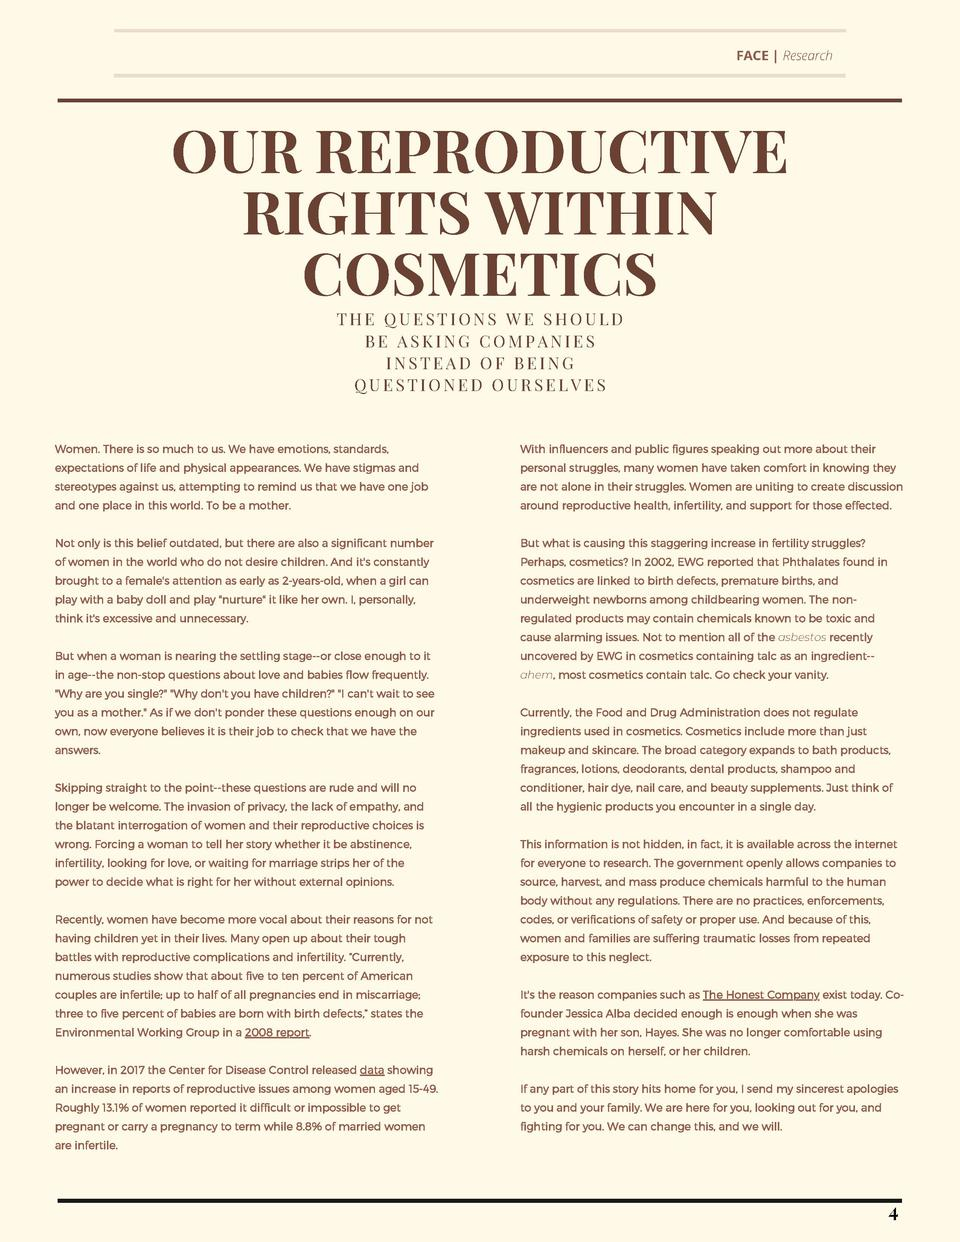 FACE   Research  OUR REPRODUCTIVE RIGHTS WITHIN COSMETICS THE QUESTIONS WE SHOULD BE ASKING COMPANIES INSTEAD OF BEING QUE...